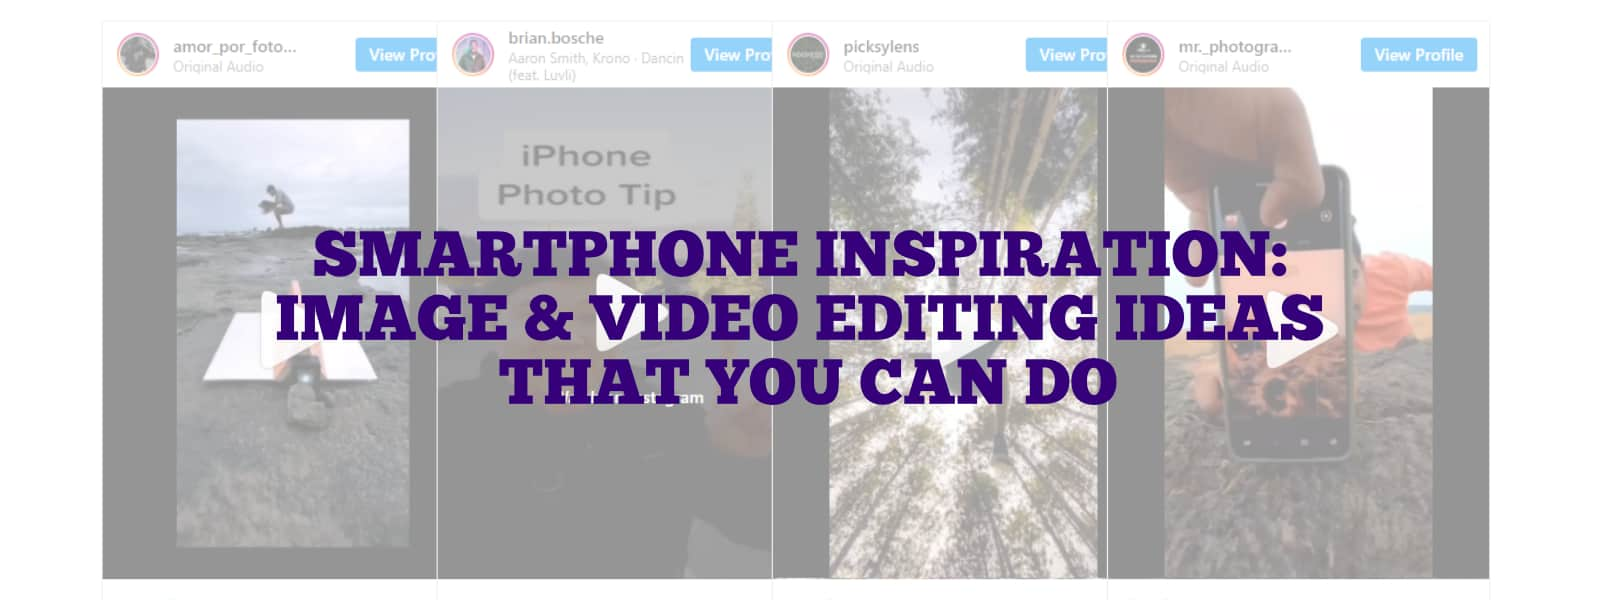 smartphone-inspiration-video-image-editing